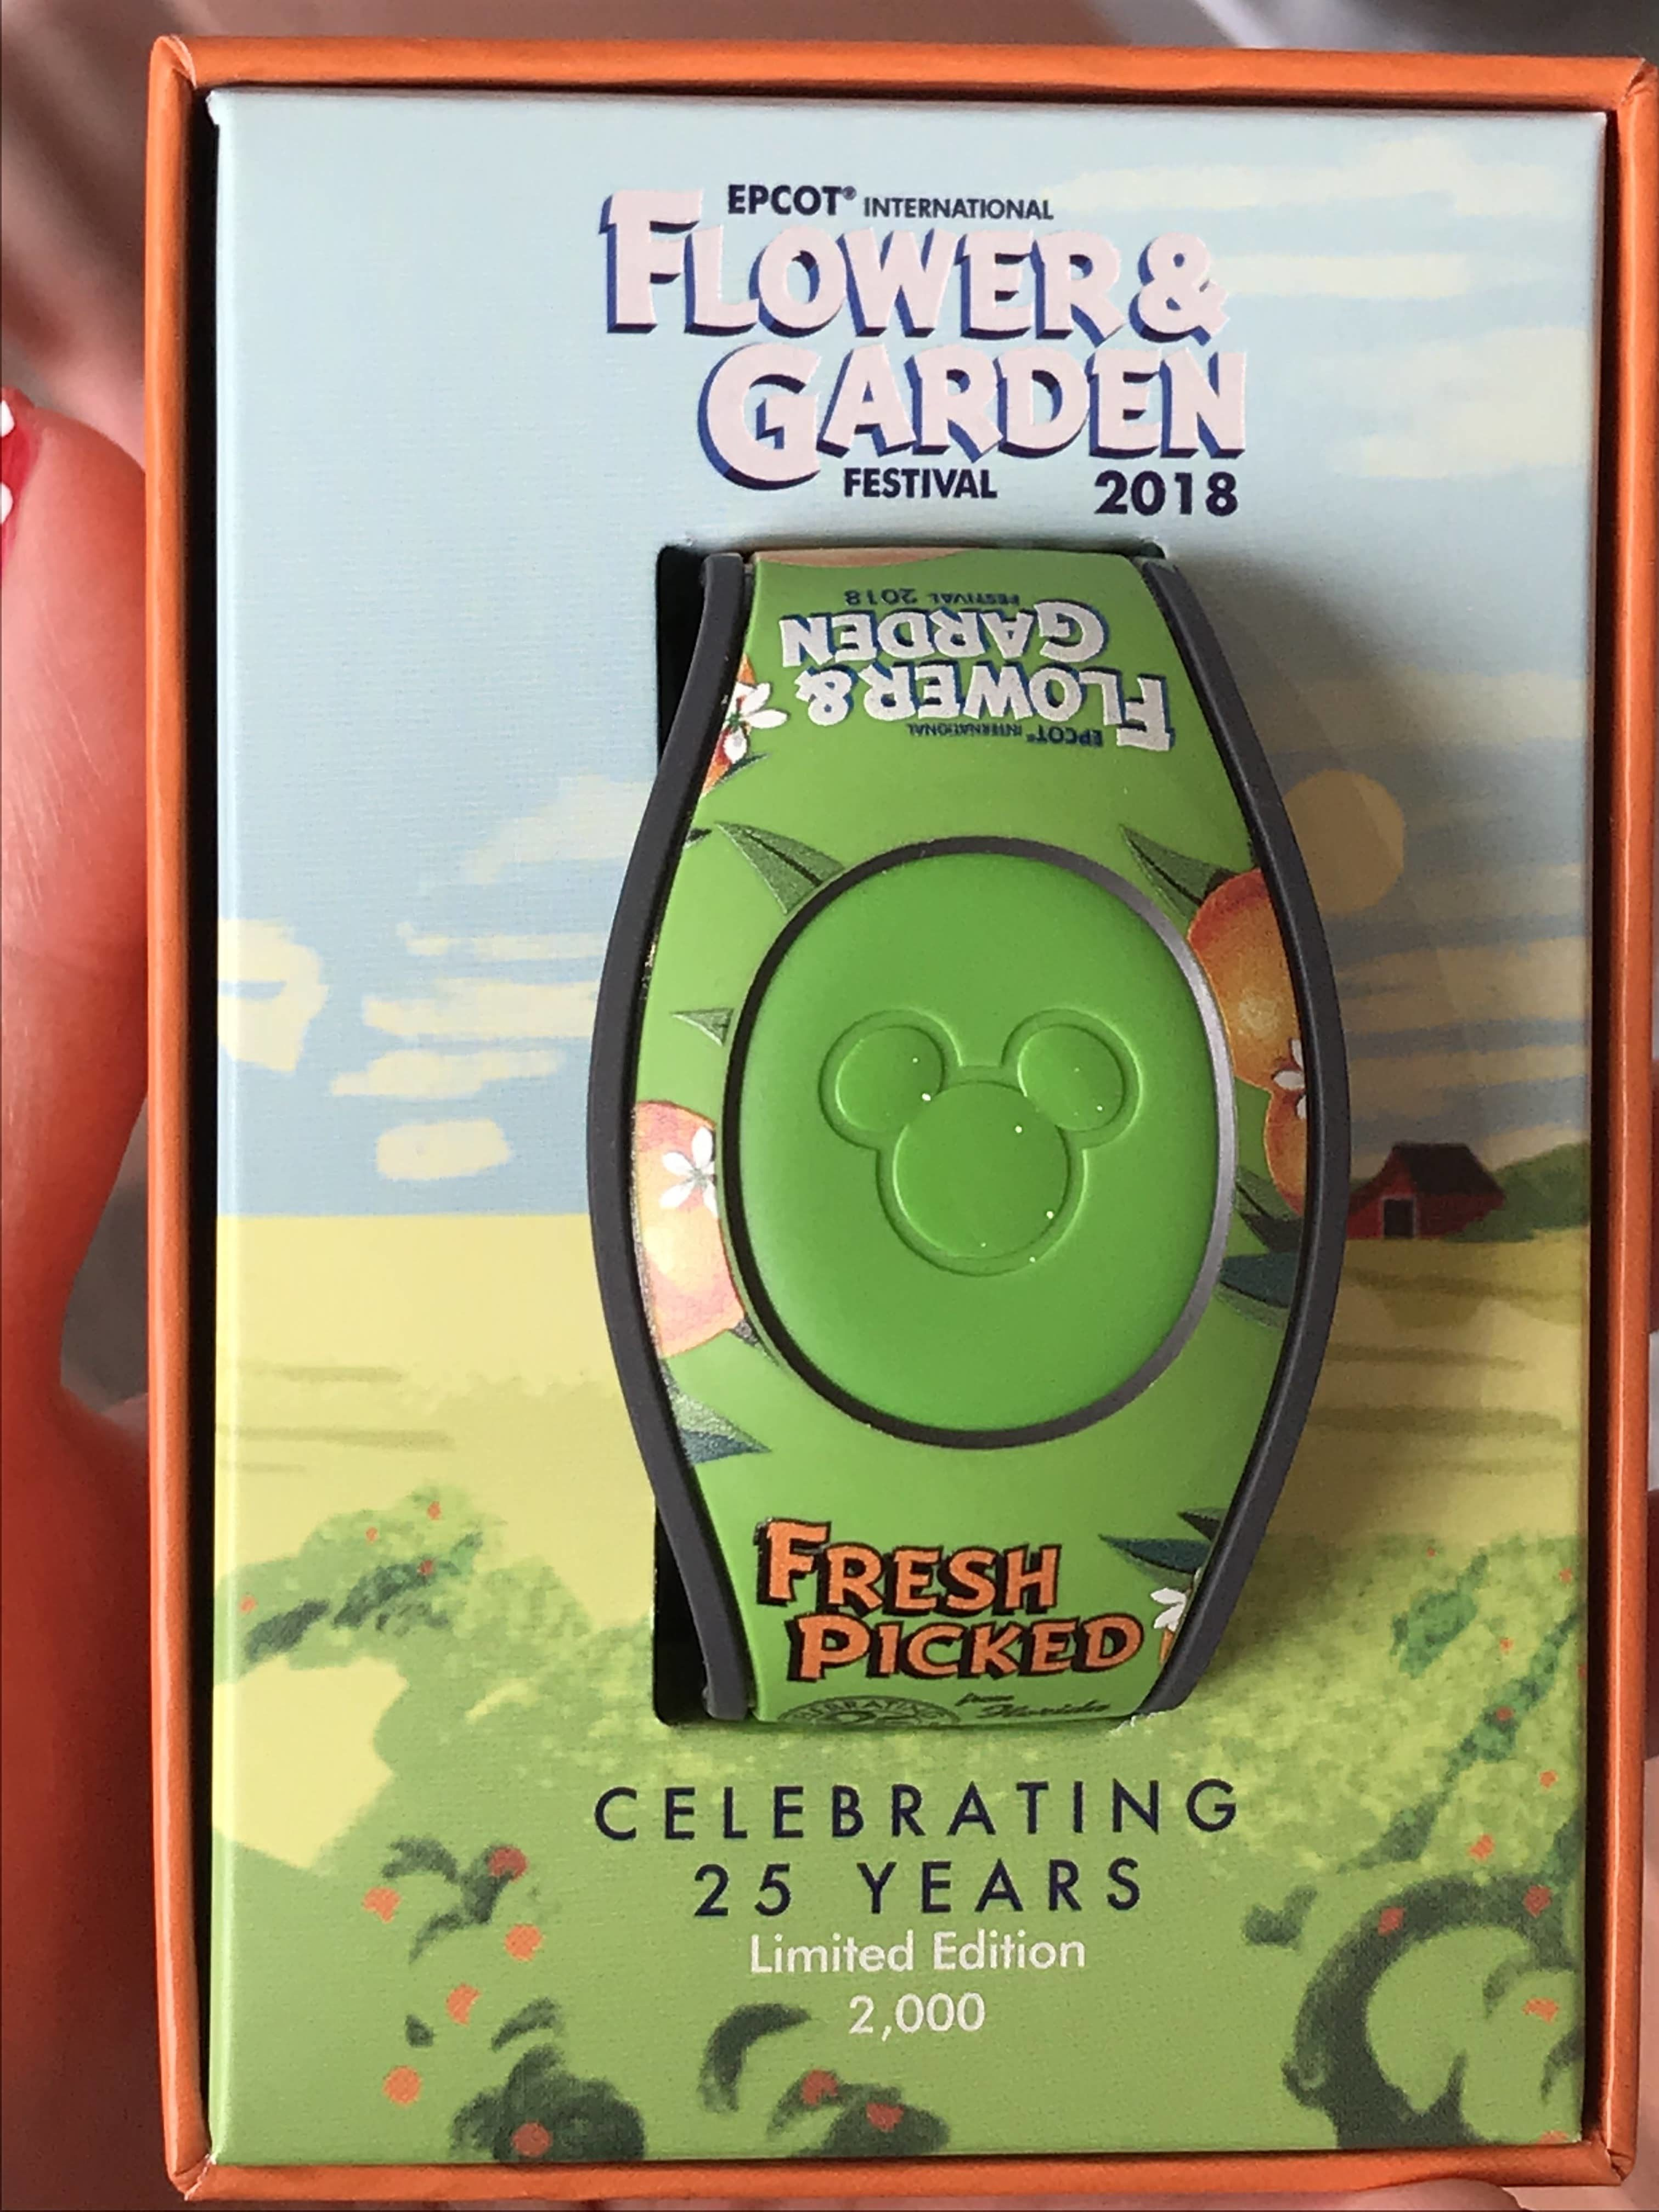 Flower and Garden 2018 Magicband